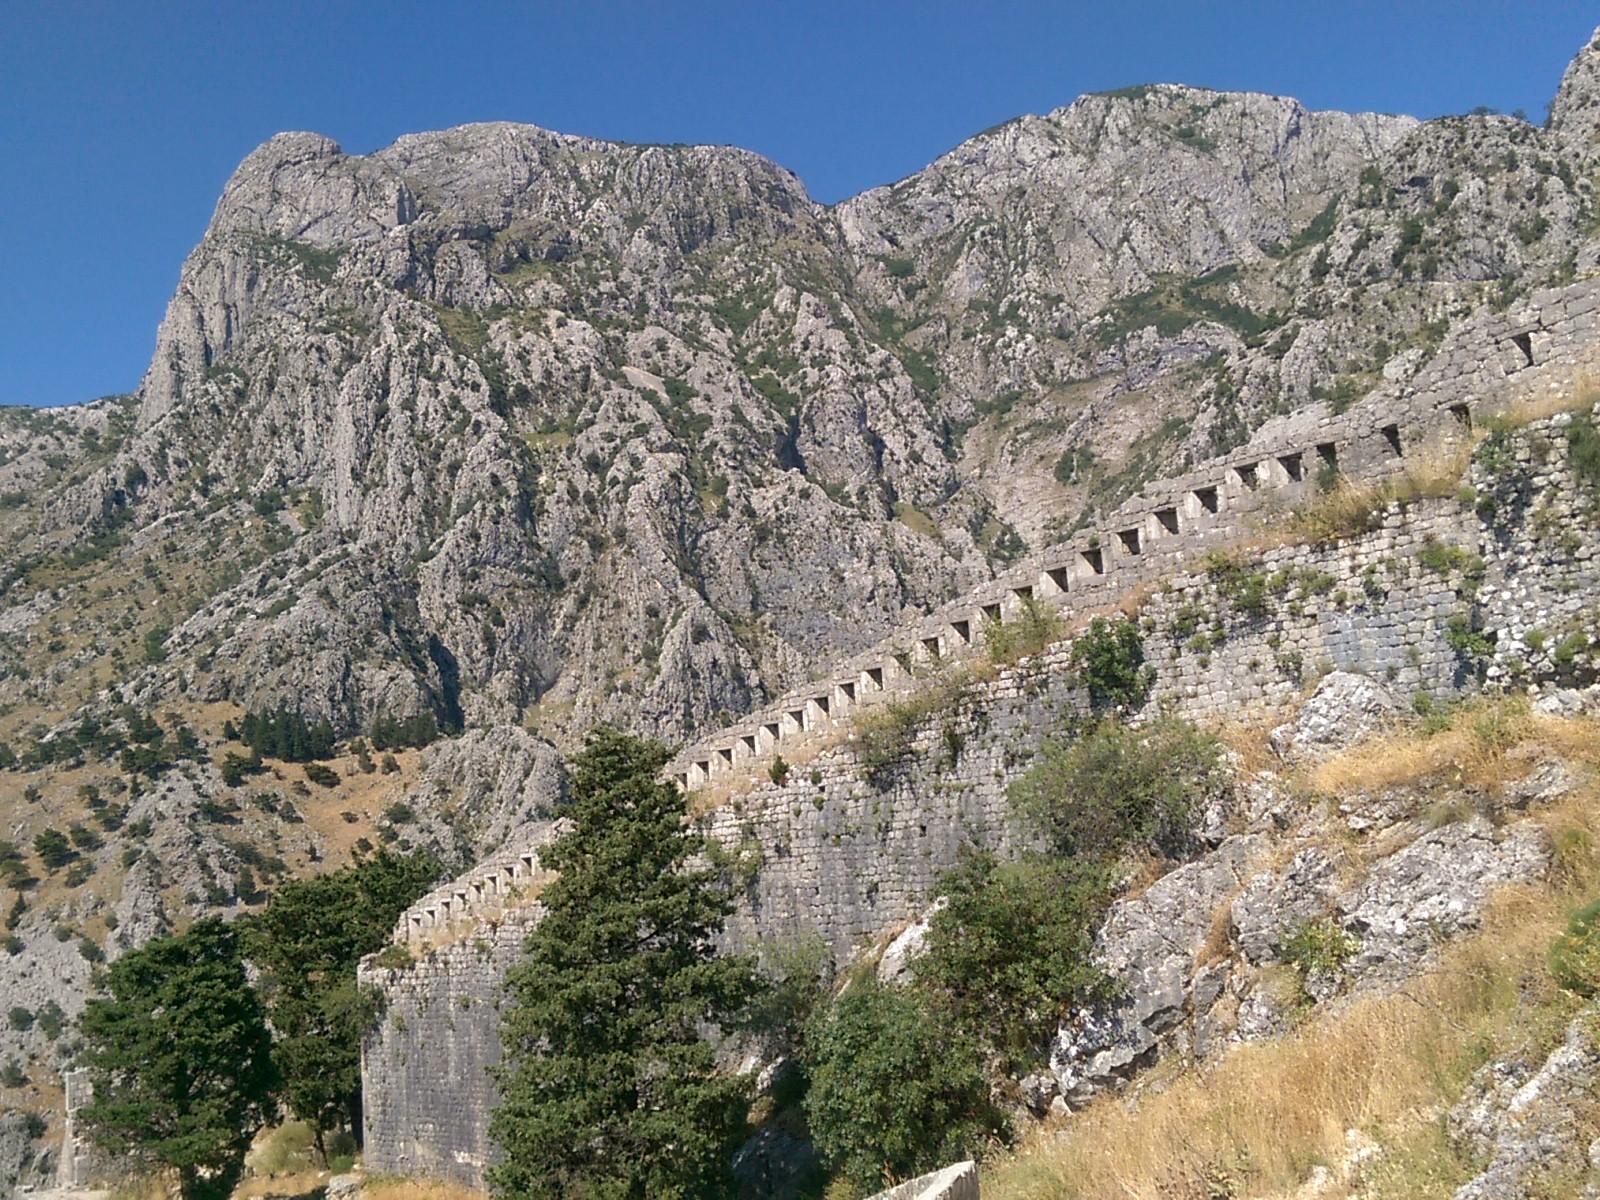 Stone city walls are almost disguised against rough rocky mountains under a clear blue skky